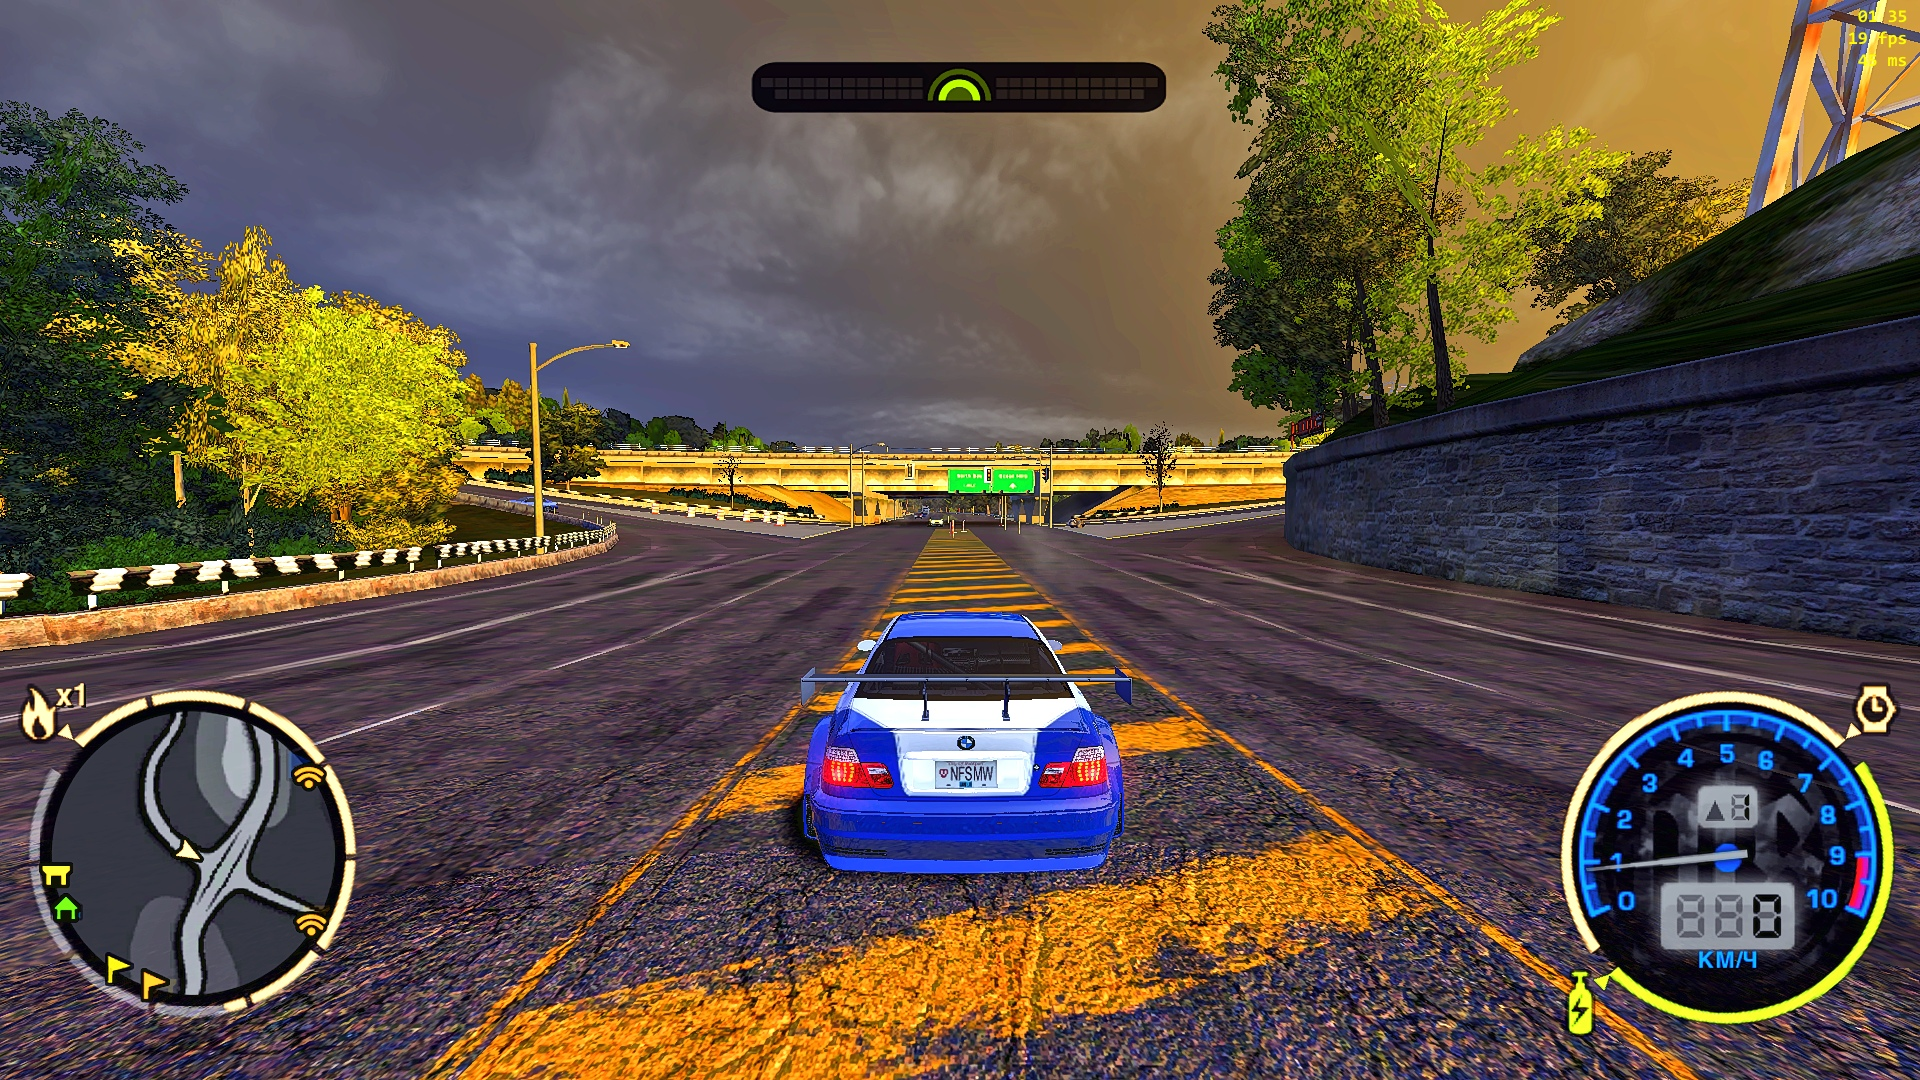 ohnpFNbj5wg.jpg - Need for Speed: Most Wanted (2005)